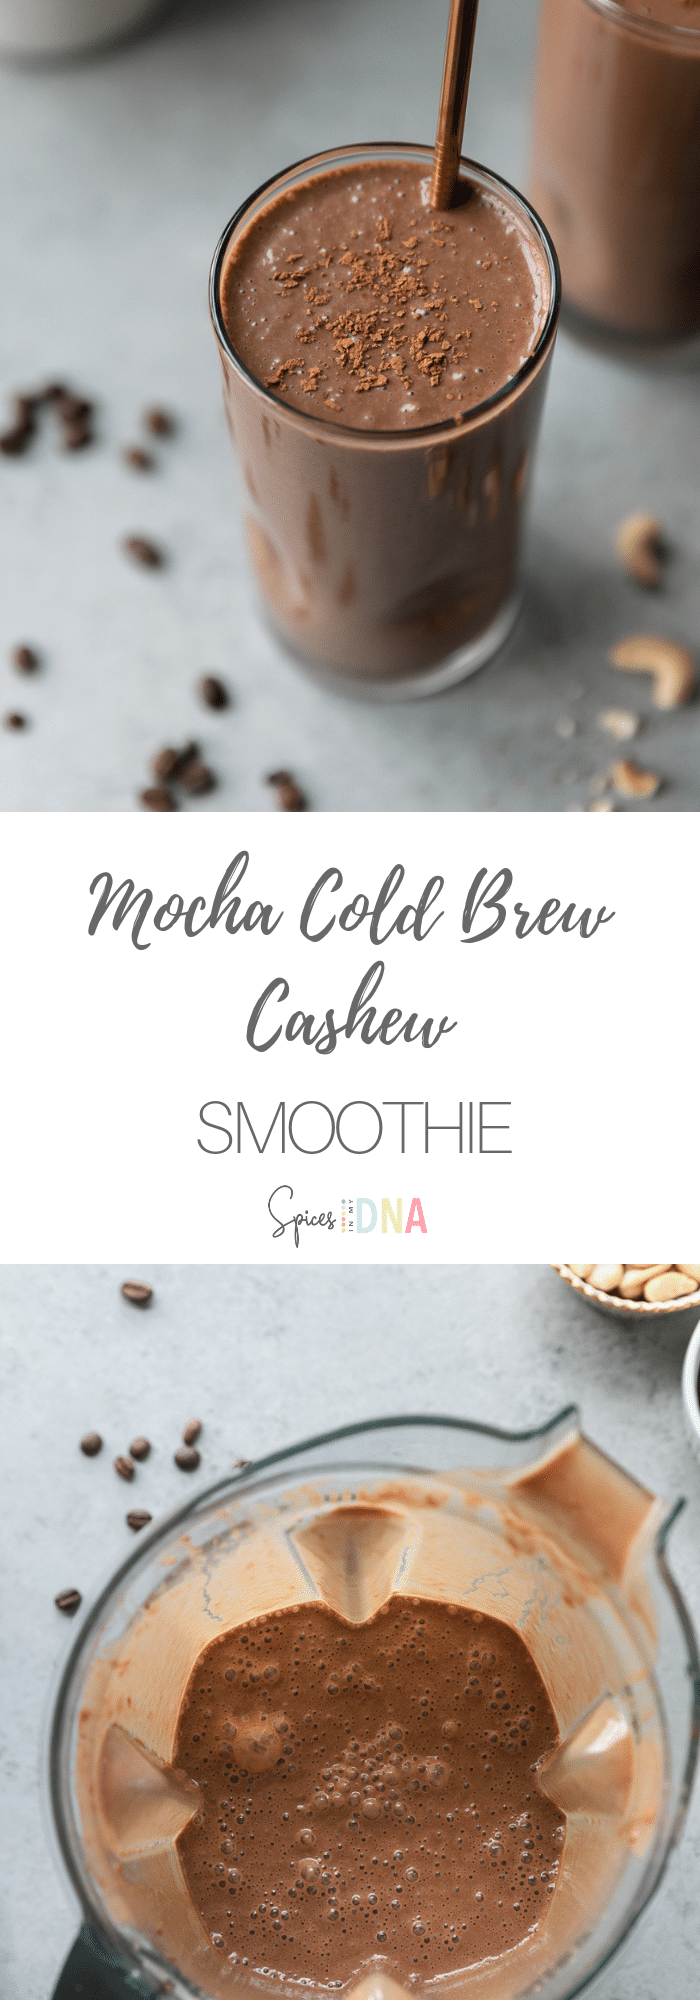 This Mocha Cold Brew Cashew Smoothie is the perfect way to start out your morning because it's coffee and breakfast in one! It's filled with frozen bananas and cashews for creaminess, dates for sweetness, cold brew, cocoa powder, vanilla, and a little sea salt! It's insanely delicious and you can add your favorite smoothie add-ins to it! I love adding collagen, hemp hearts, or chia seeds! #smoothie #mocha #coldbrew #cashew #vegan #breakfast